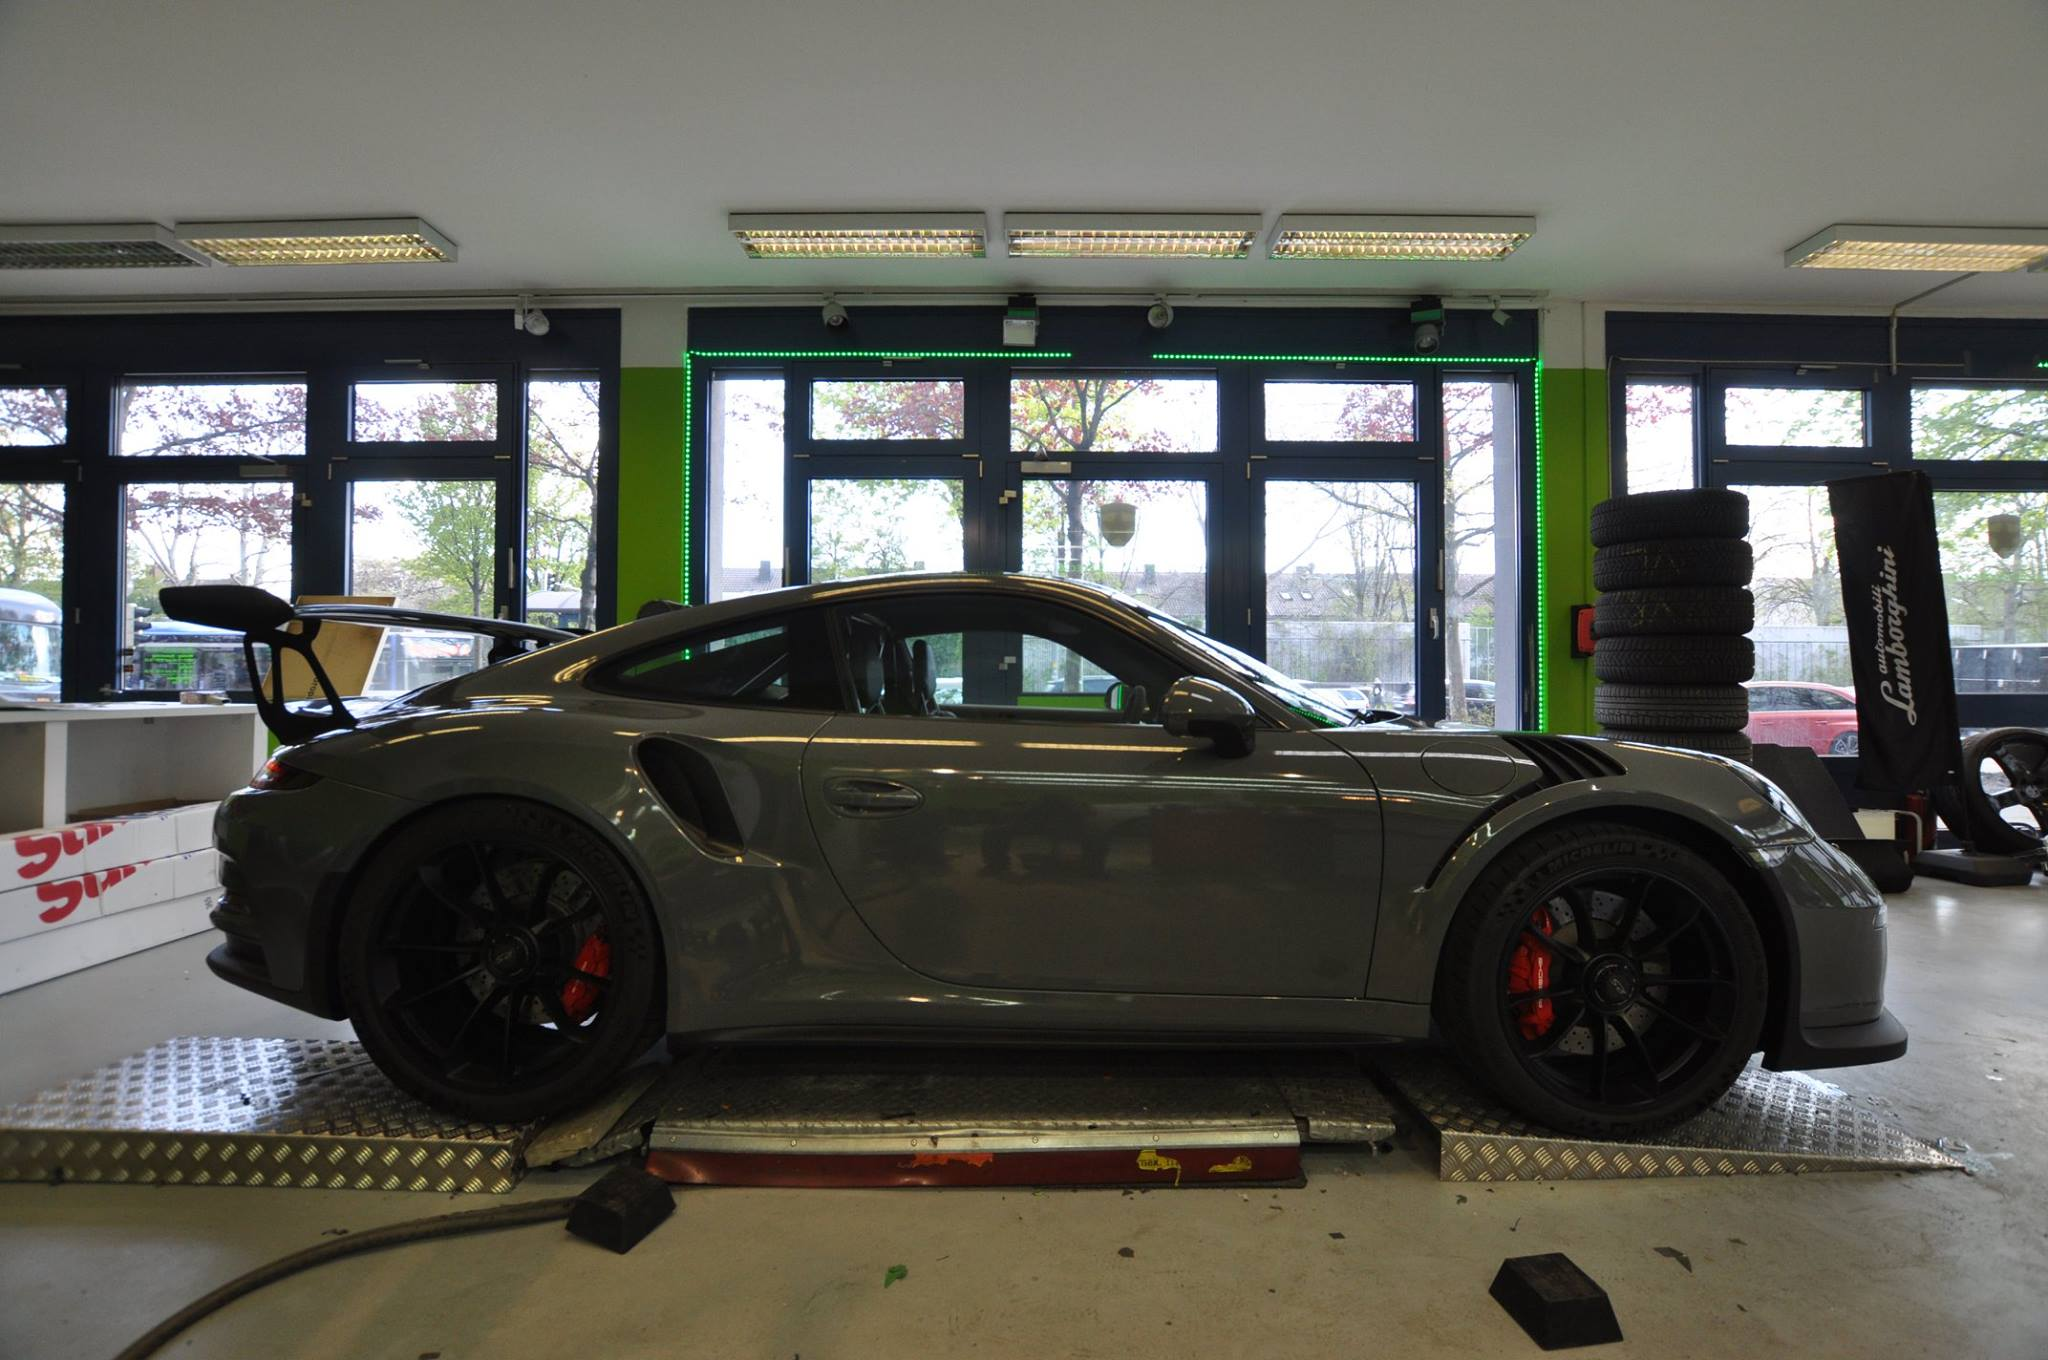 Stone cold grey porsche 911 gt3 rs wrap for the slightly understated look autoevolution